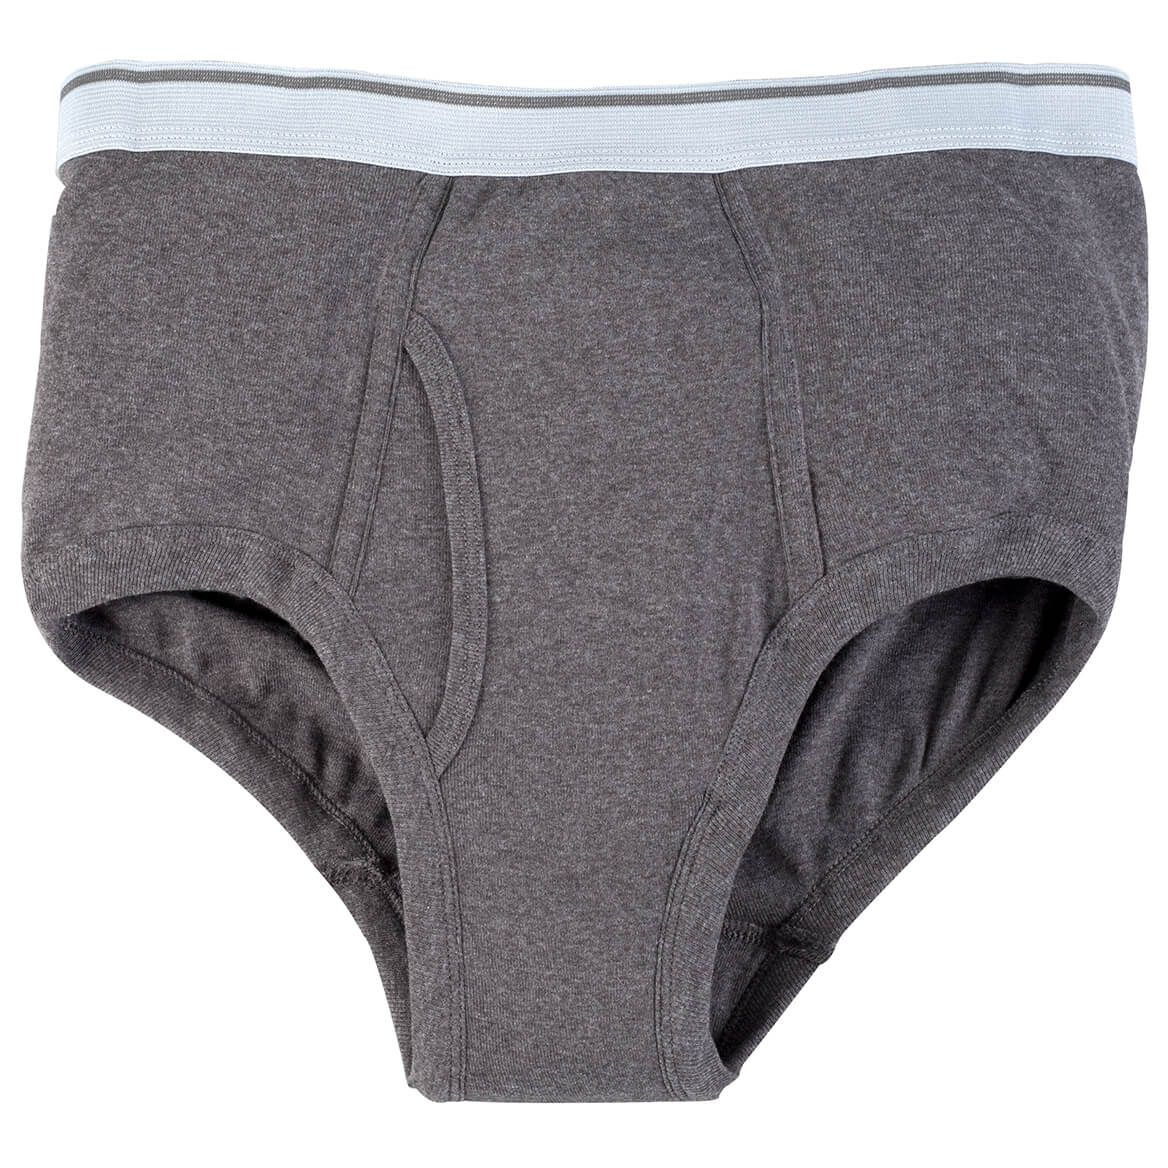 Incontinence Briefs For Men, Gray - 10 oz.-348097